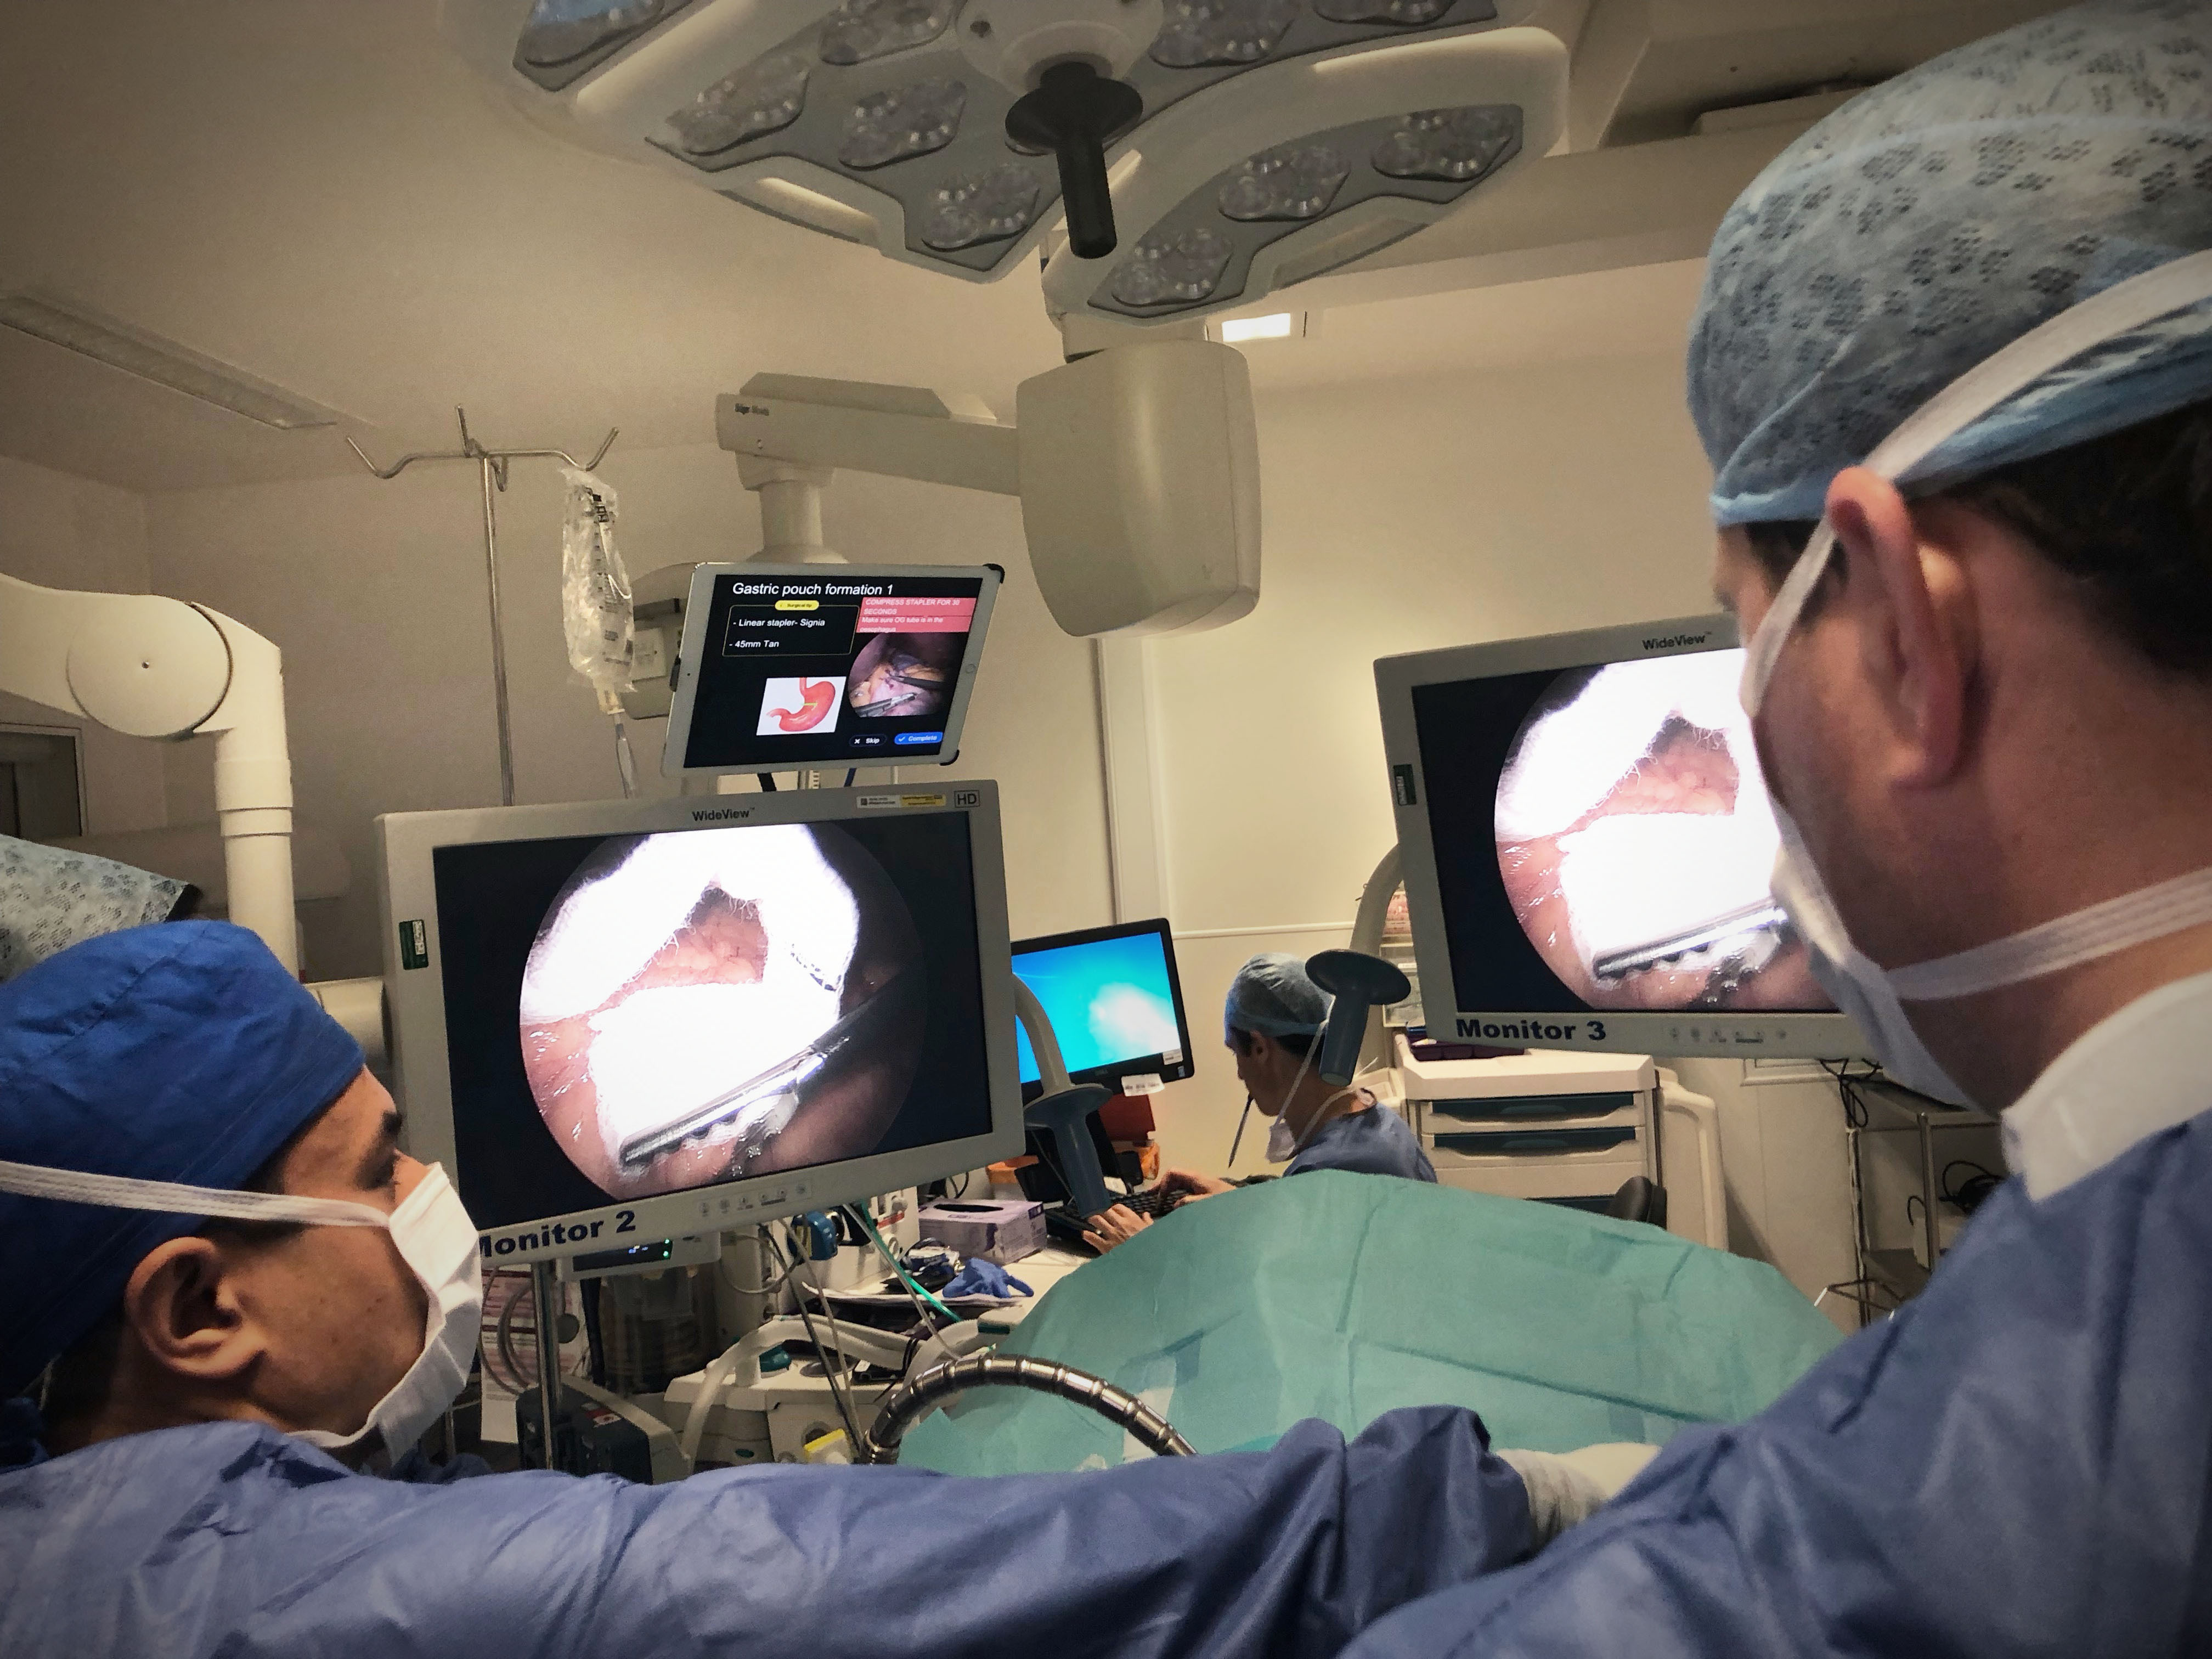 Digital Surgery Deploys First Surgical Artificial Intelligence